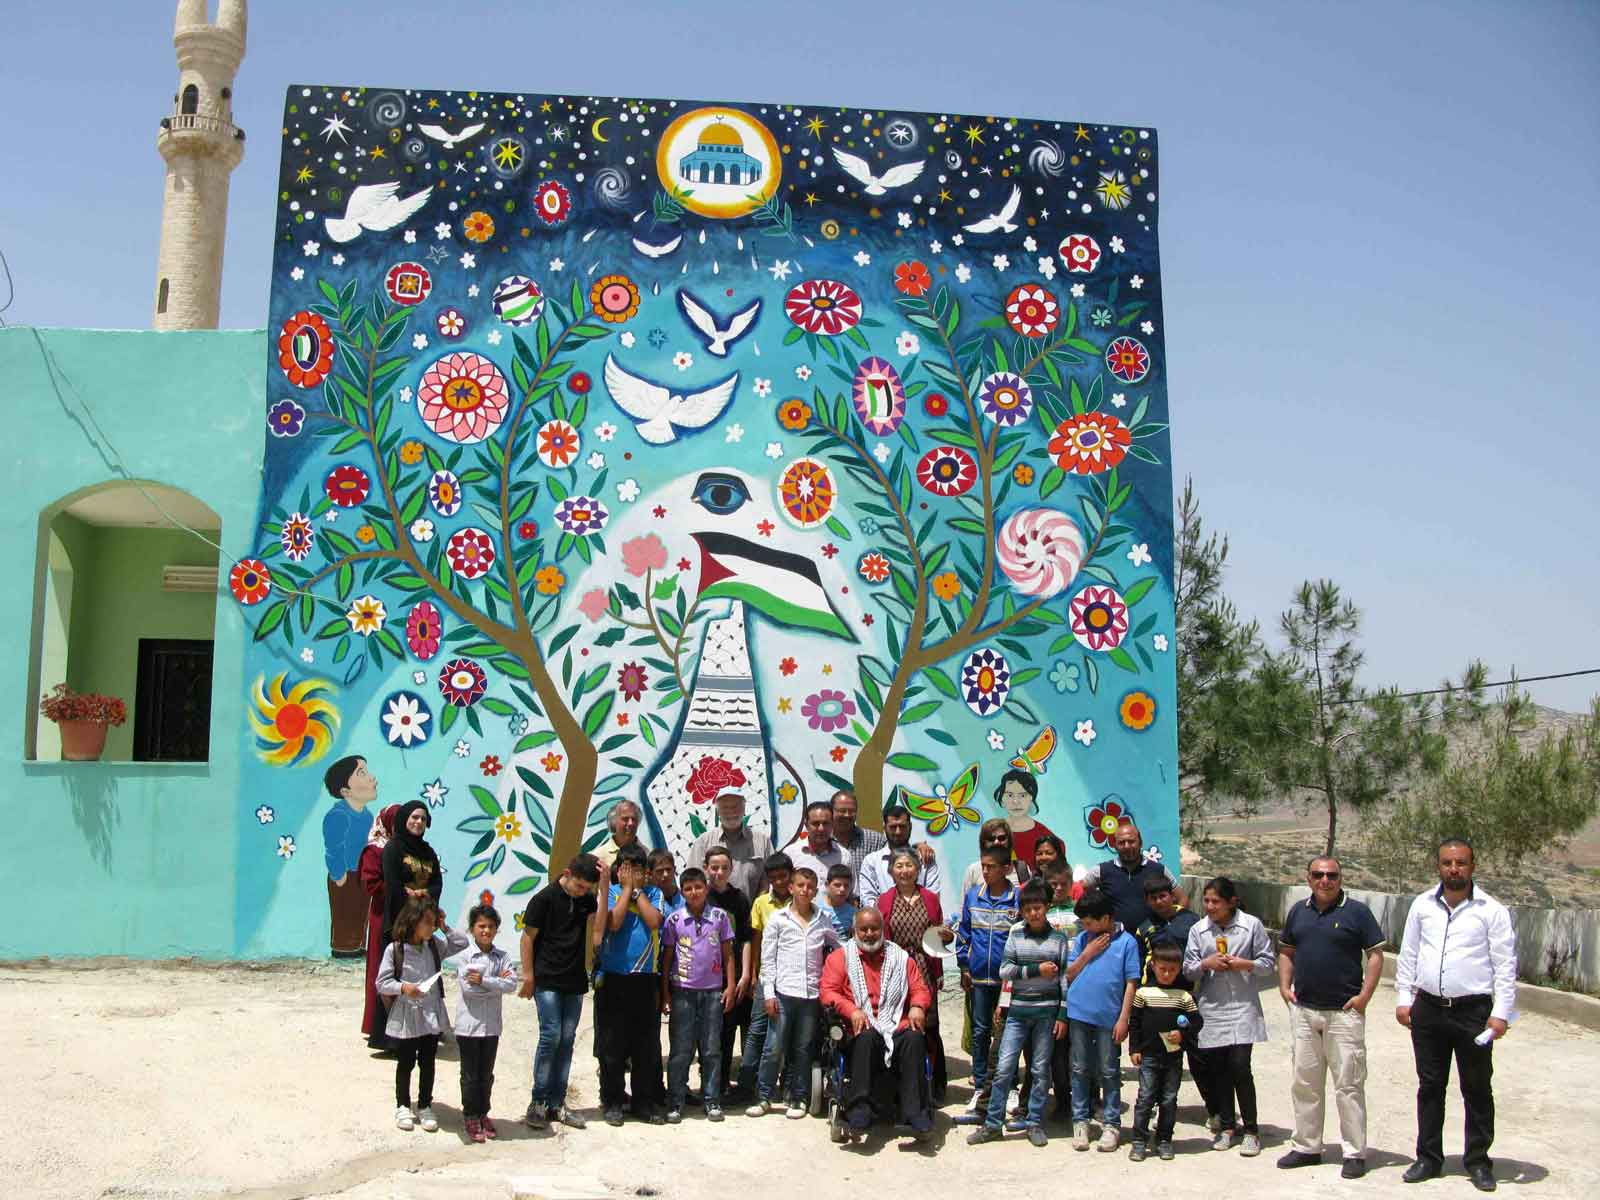 Mayor Haj Sami with his community at the completion of the mural.